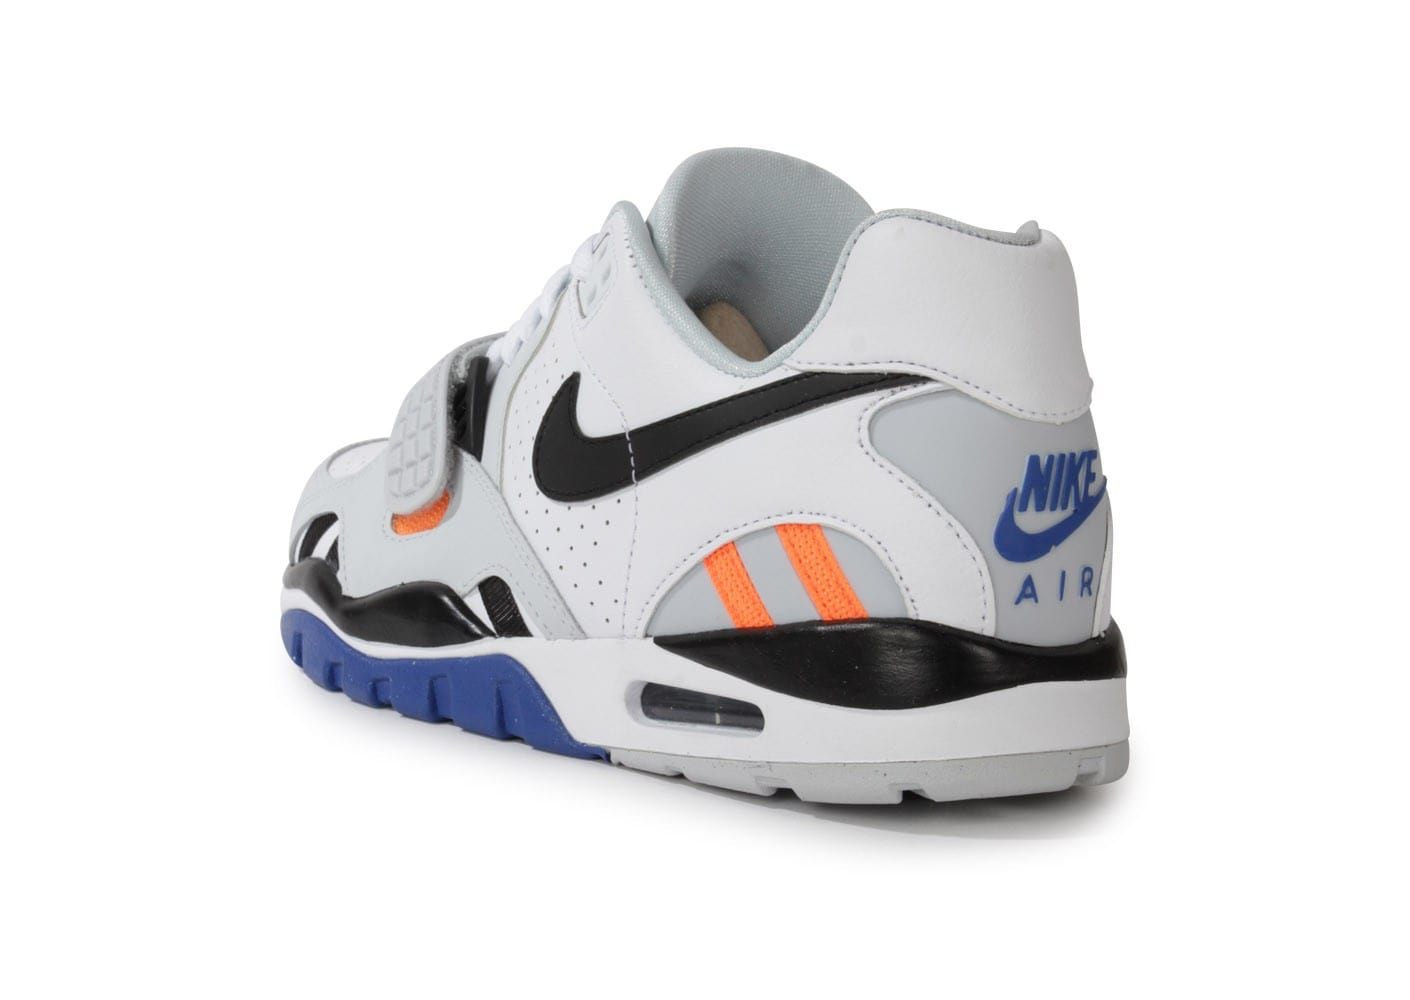 best loved 8851a 766f6 ... Chaussures Nike Air Trainer Sc Ii Low Blanche vue arrière ...